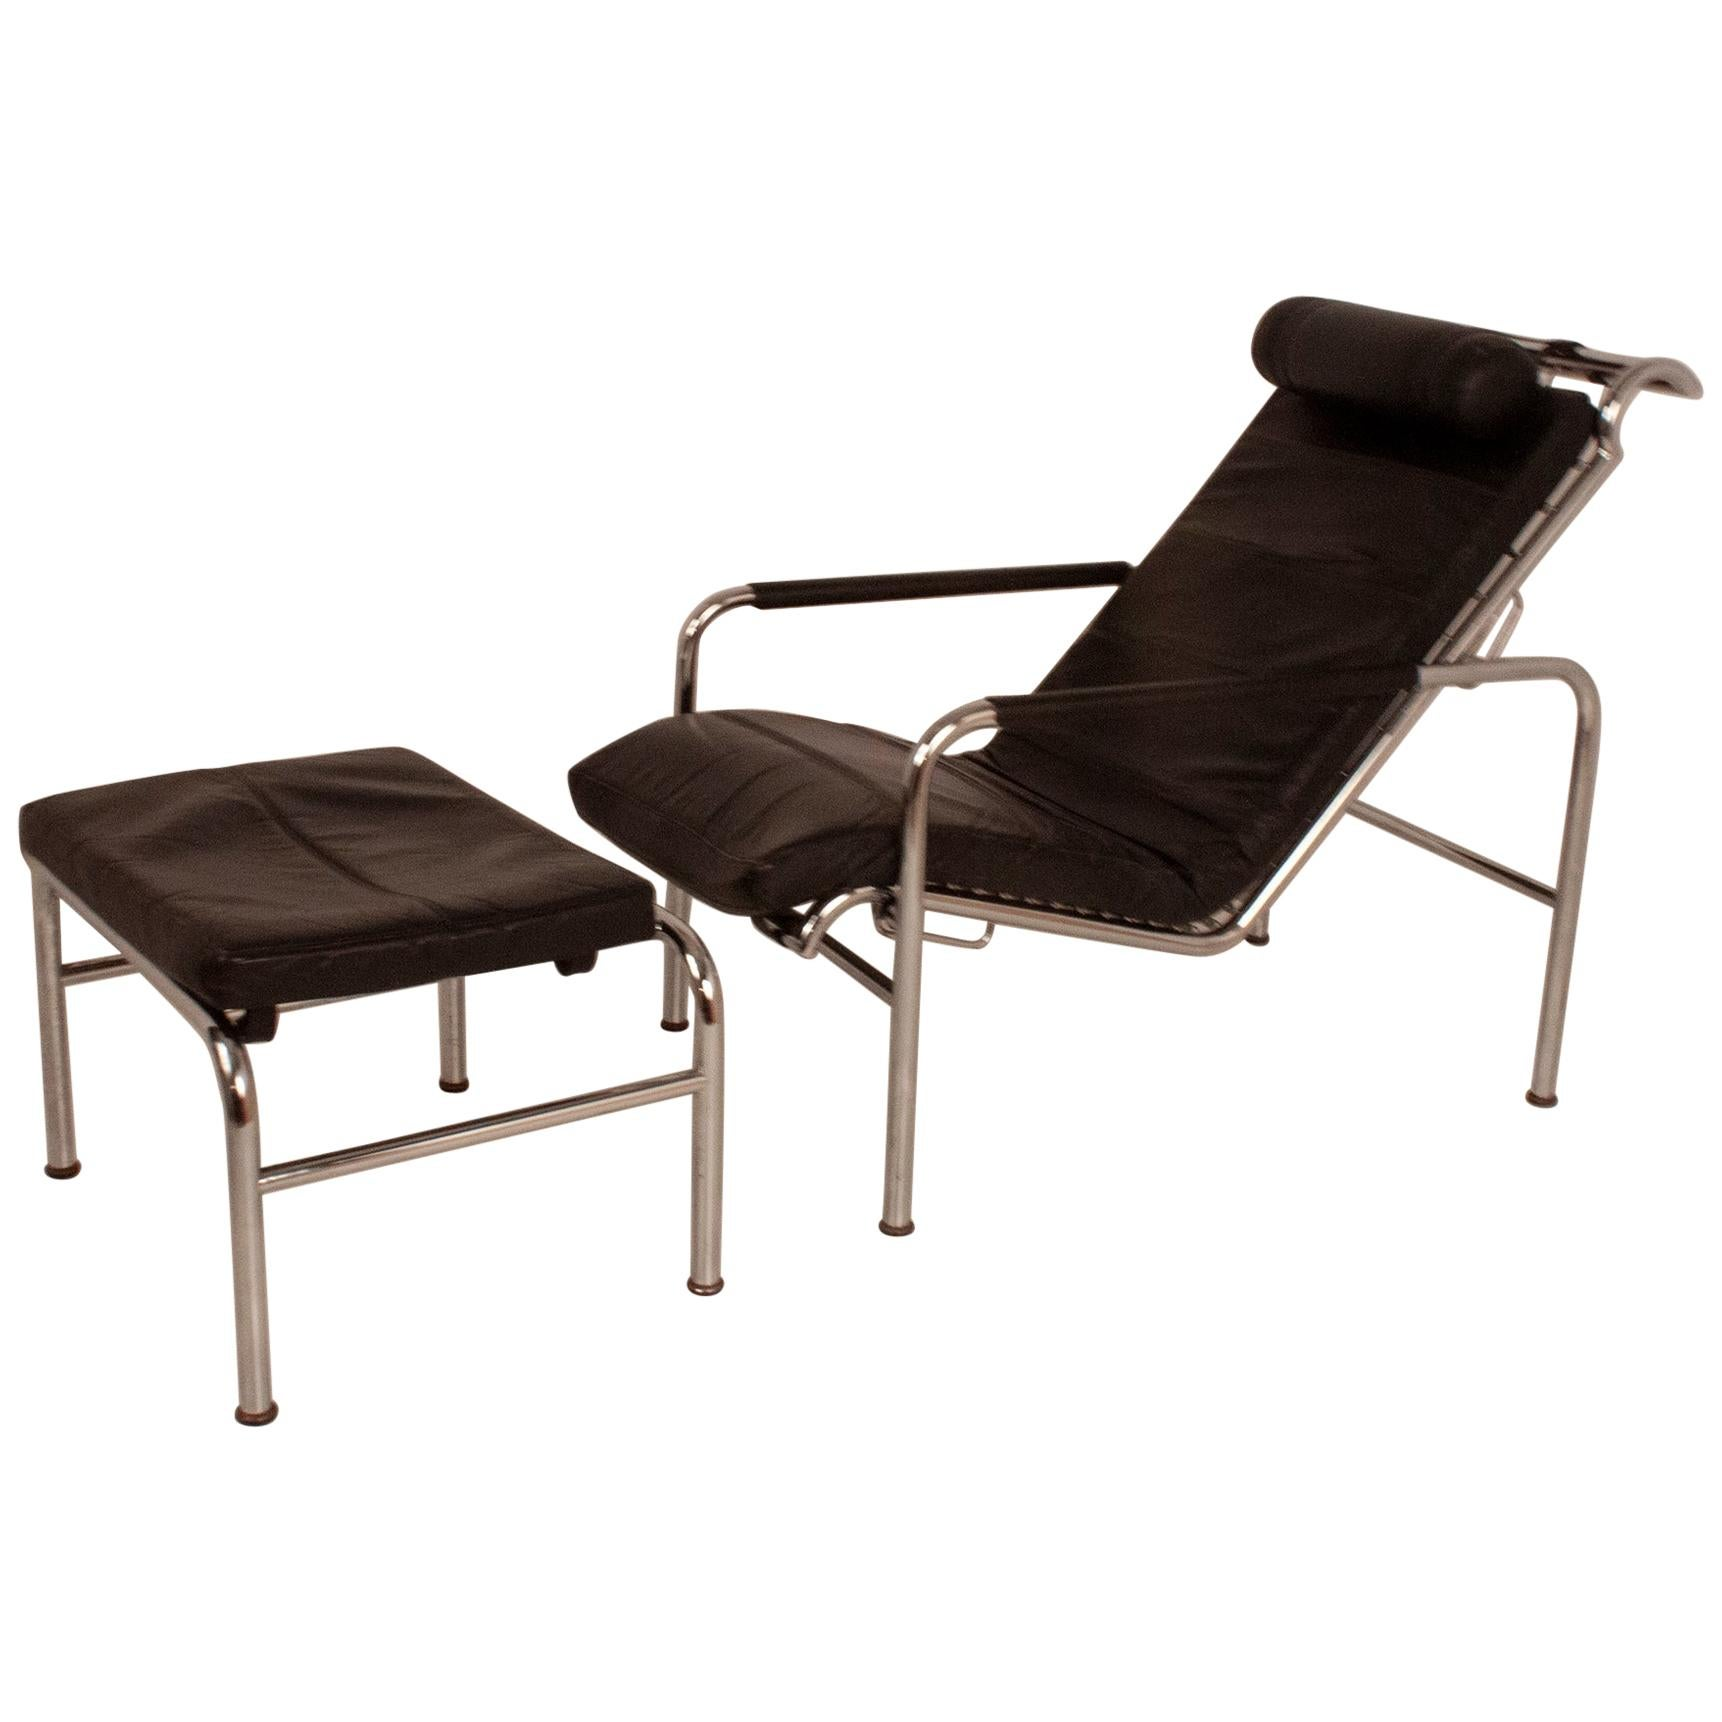 Genni Lounge Chair and Ottoman by Gabriele Mucchi, Italy, 1980s